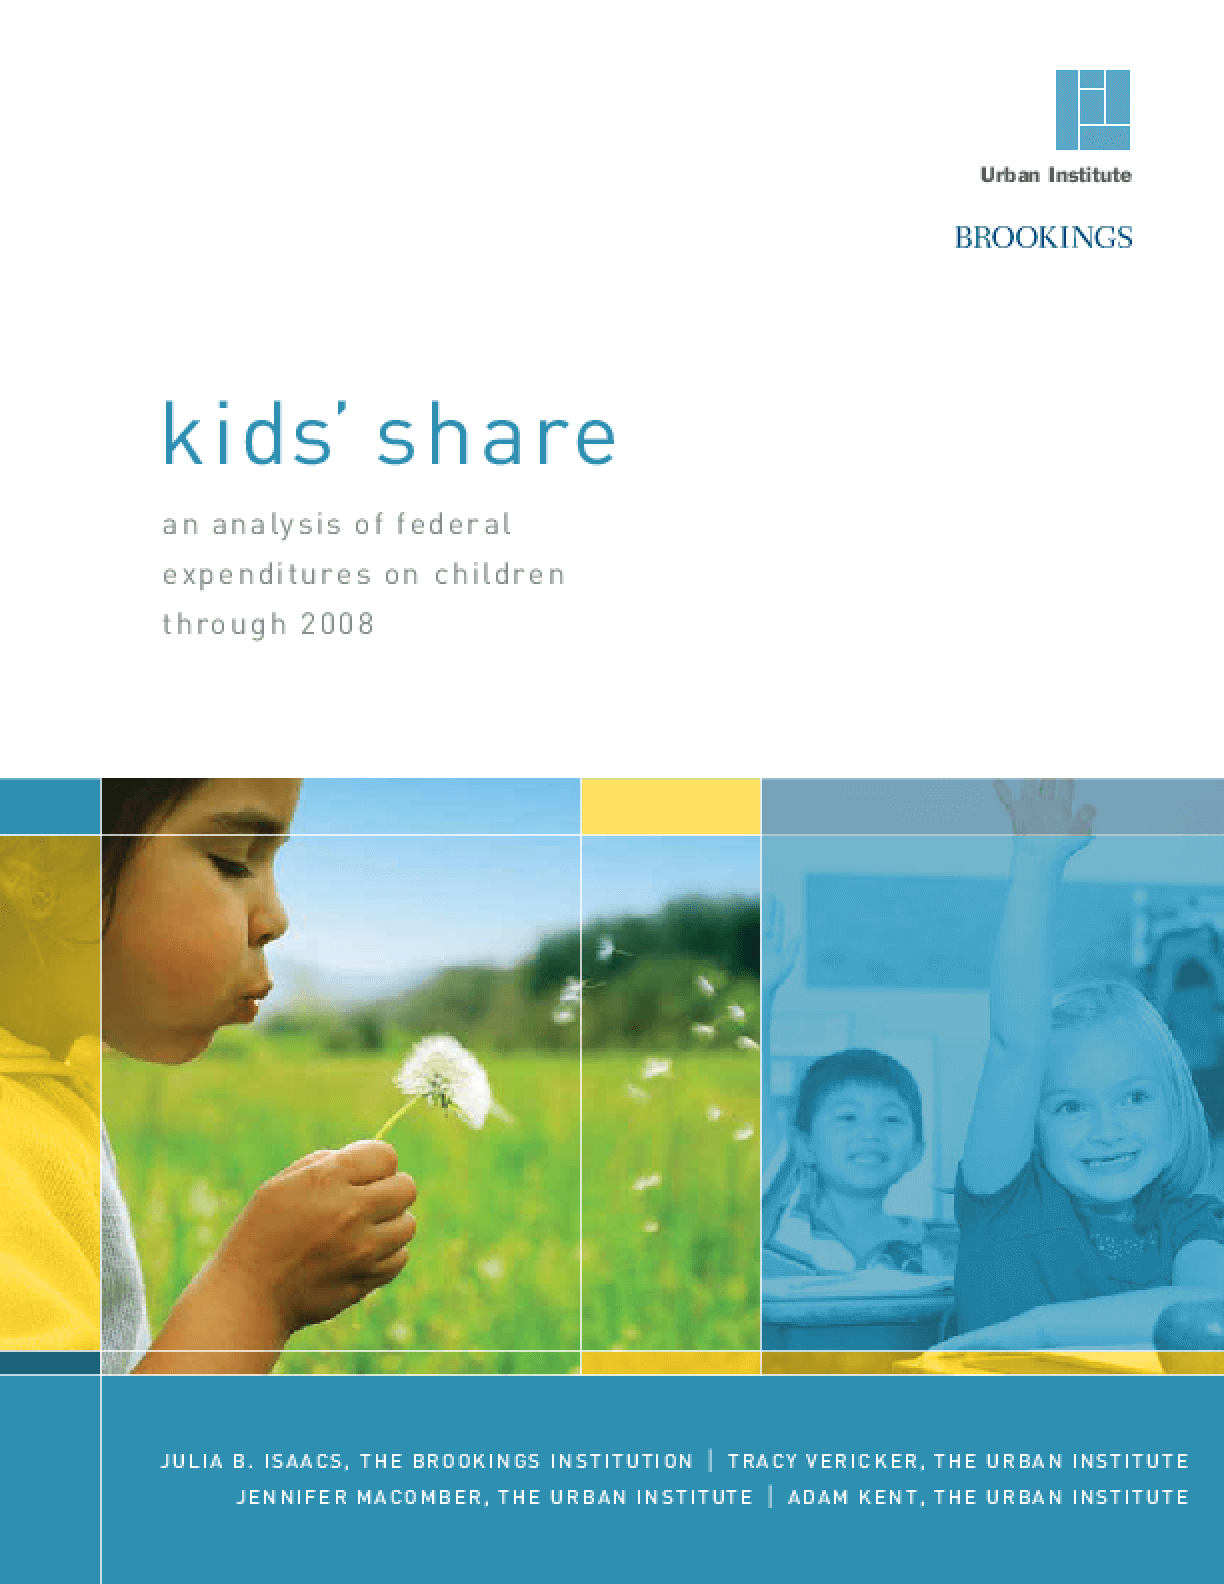 Kids' Share: An Analysis of Federal Expenditures on Children Through 2008